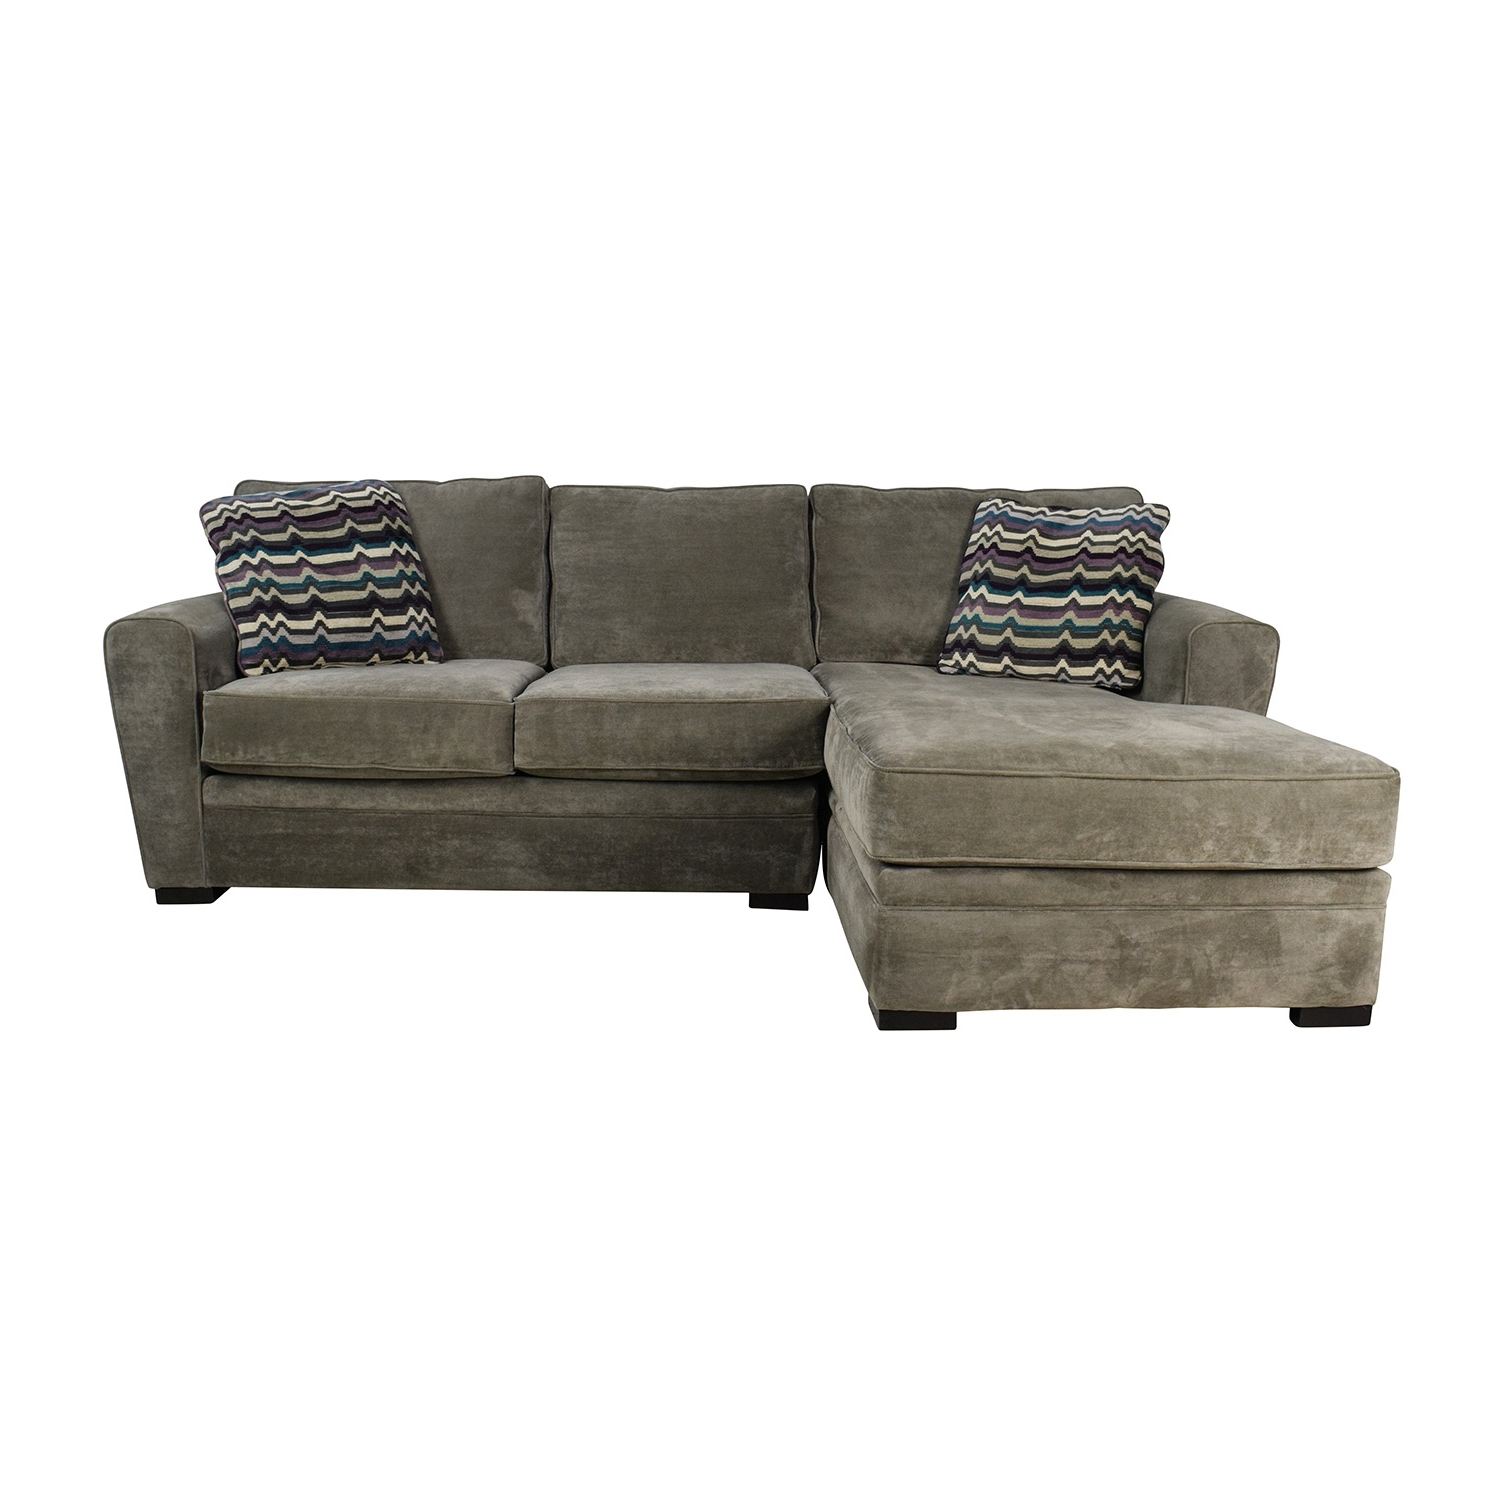 [%52% Off – Raymour & Flanigan Raymour & Flanigan Artemis Ii With Trendy Raymour And Flanigan Sectional Sofas|Raymour And Flanigan Sectional Sofas Throughout Newest 52% Off – Raymour & Flanigan Raymour & Flanigan Artemis Ii|Most Up To Date Raymour And Flanigan Sectional Sofas In 52% Off – Raymour & Flanigan Raymour & Flanigan Artemis Ii|Newest 52% Off – Raymour & Flanigan Raymour & Flanigan Artemis Ii Within Raymour And Flanigan Sectional Sofas%] (View 2 of 15)